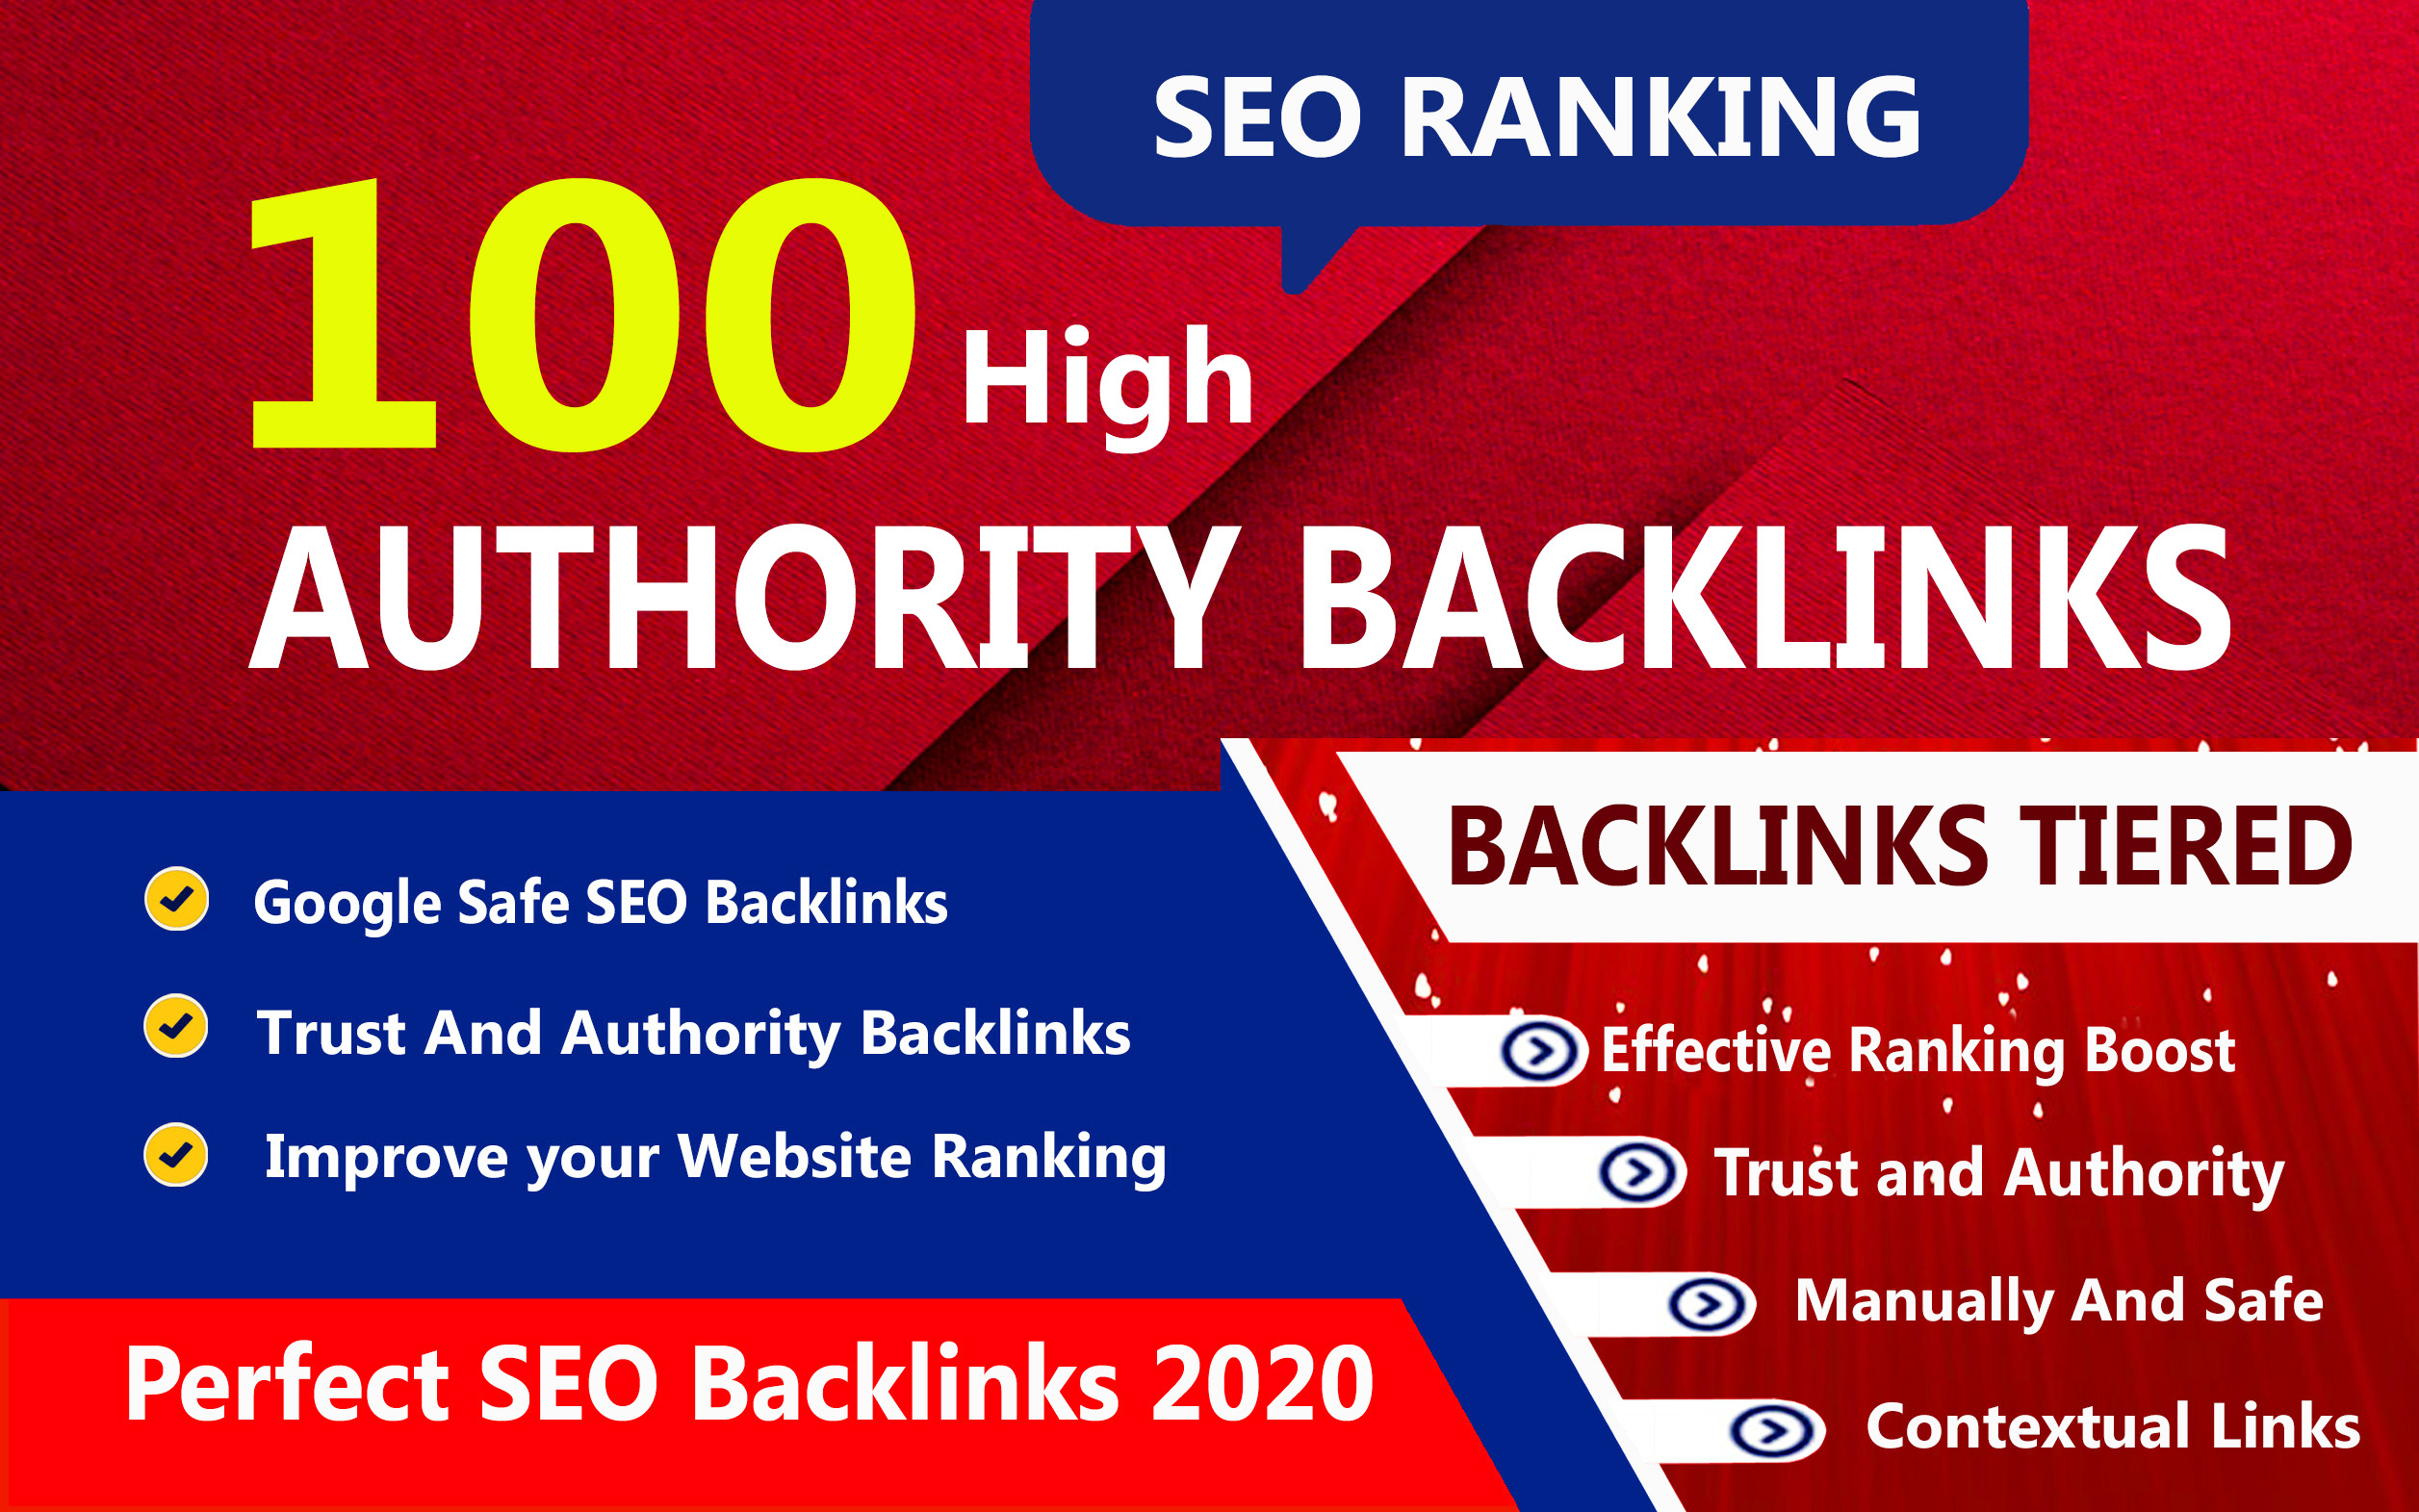 I Will Boost Up Your Site With 100 High Authority Backlinks Dofollow